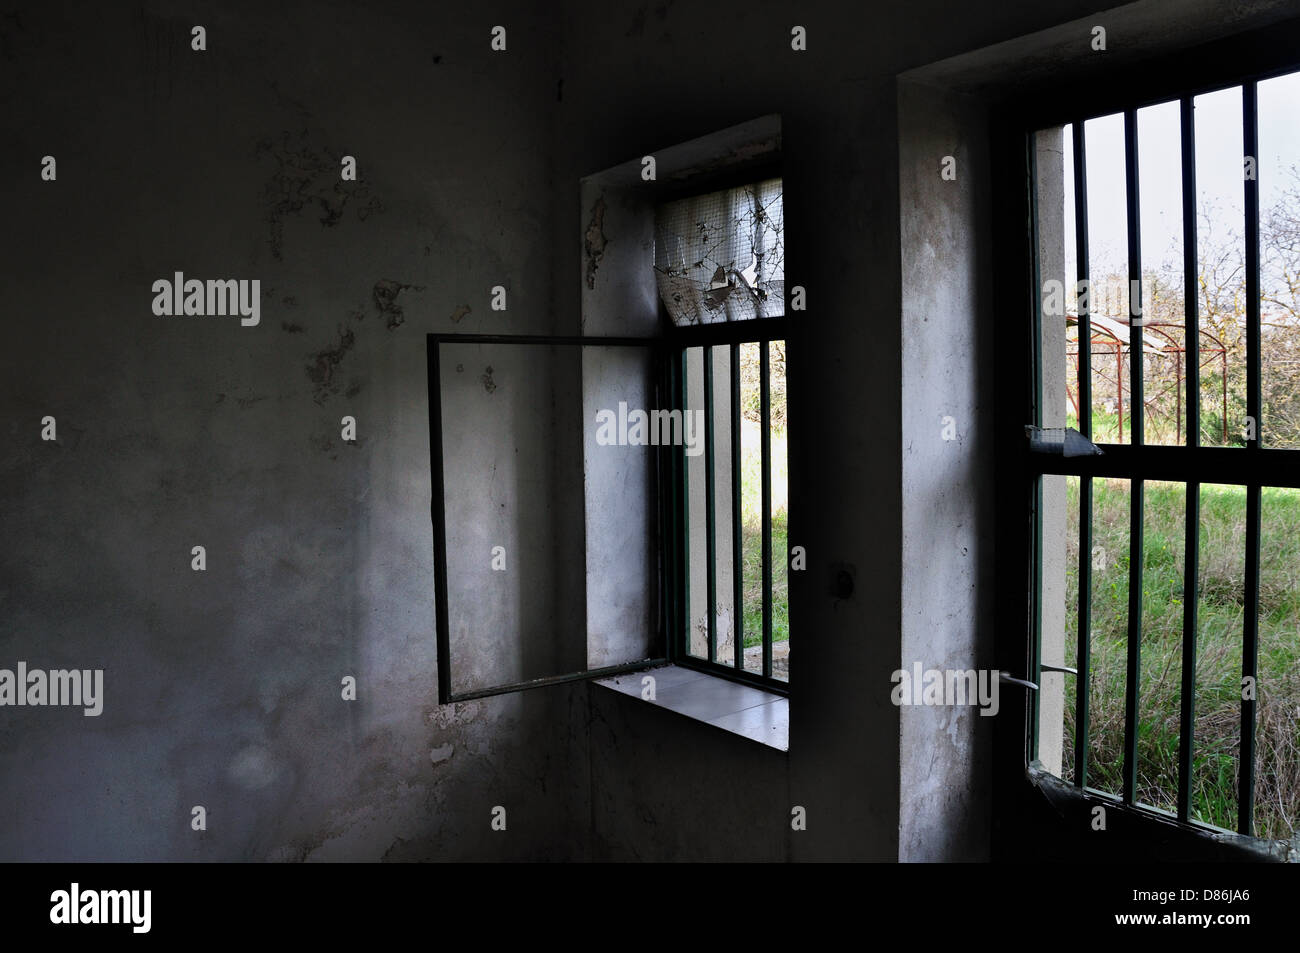 Barred door and windows in abandoned house interior & Barred door and windows in abandoned house interior Stock Photo ...